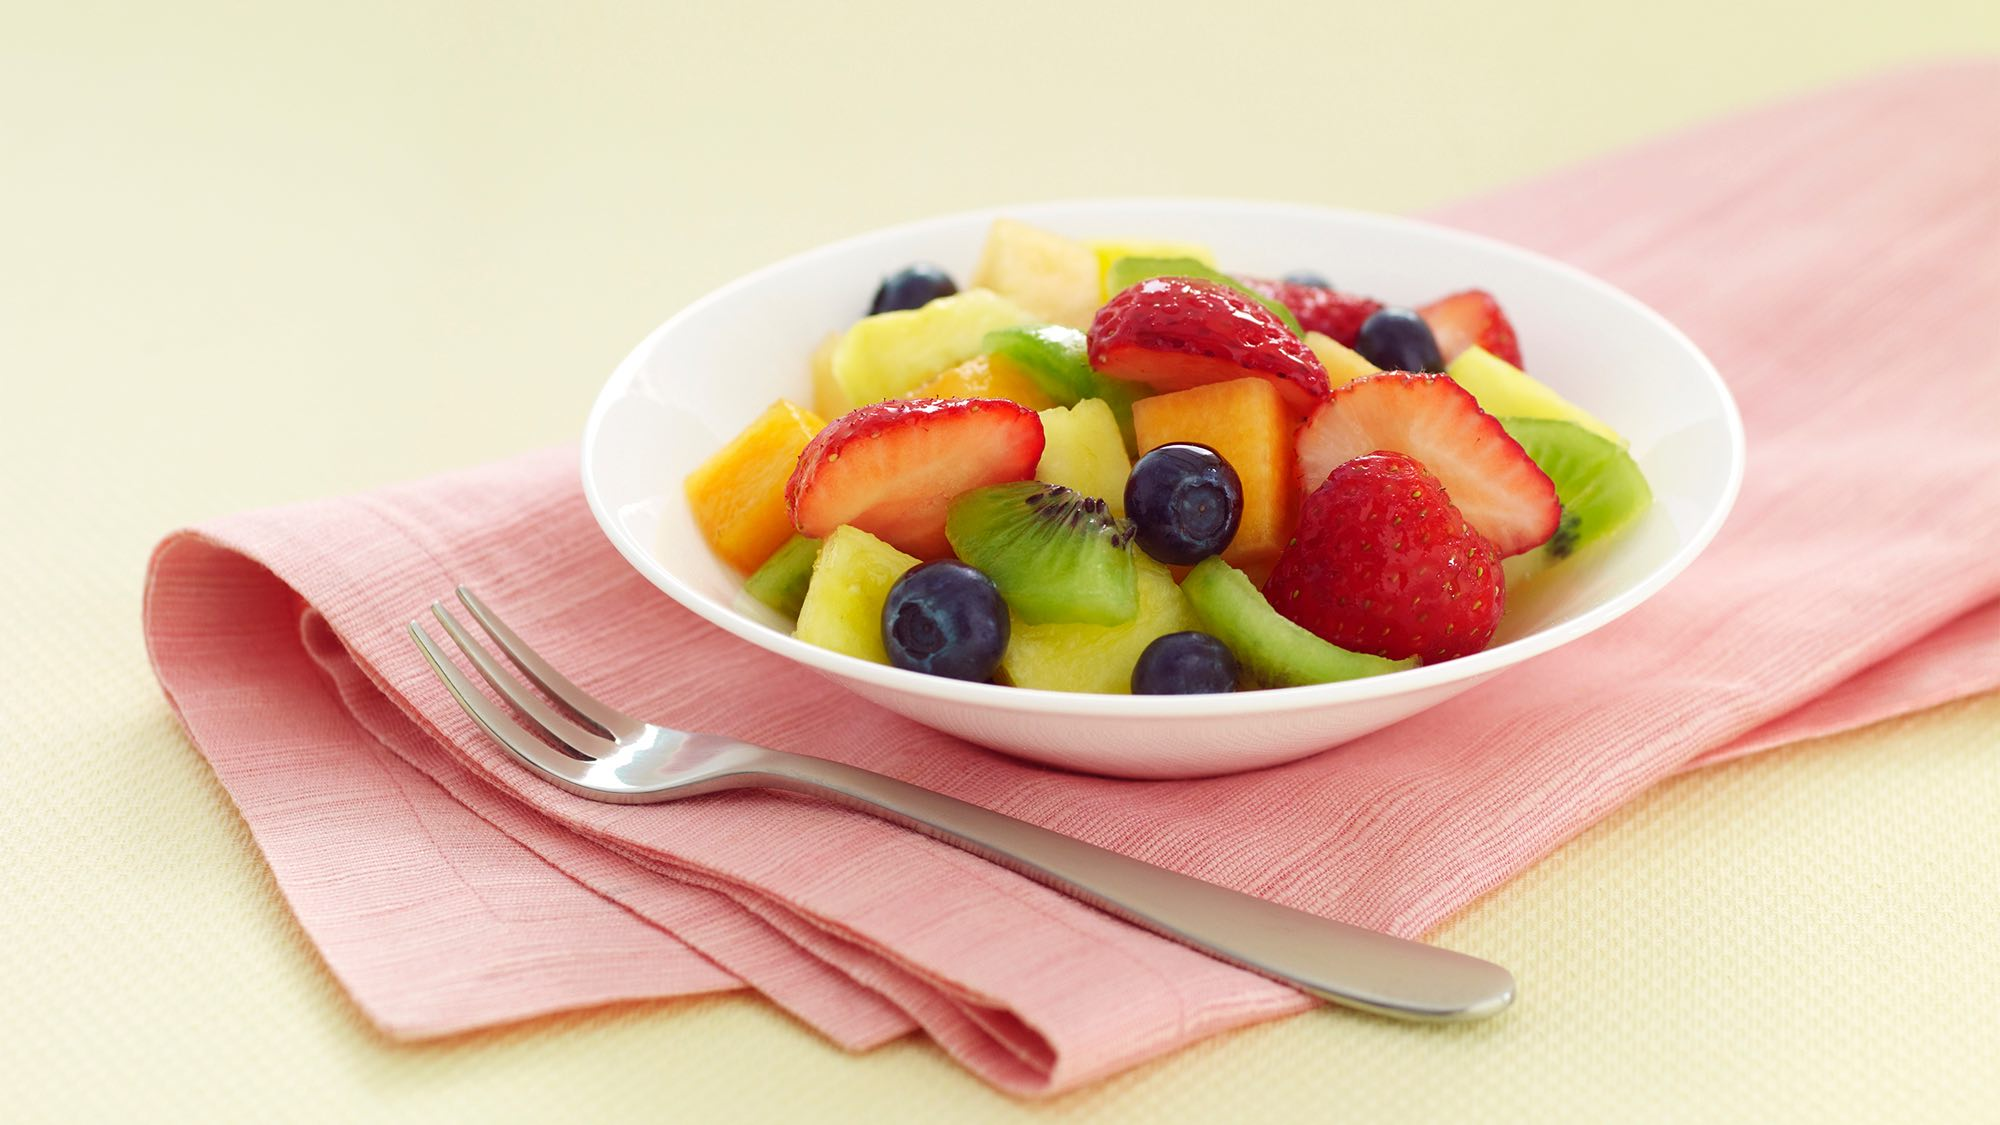 McCormick Fruit Salad